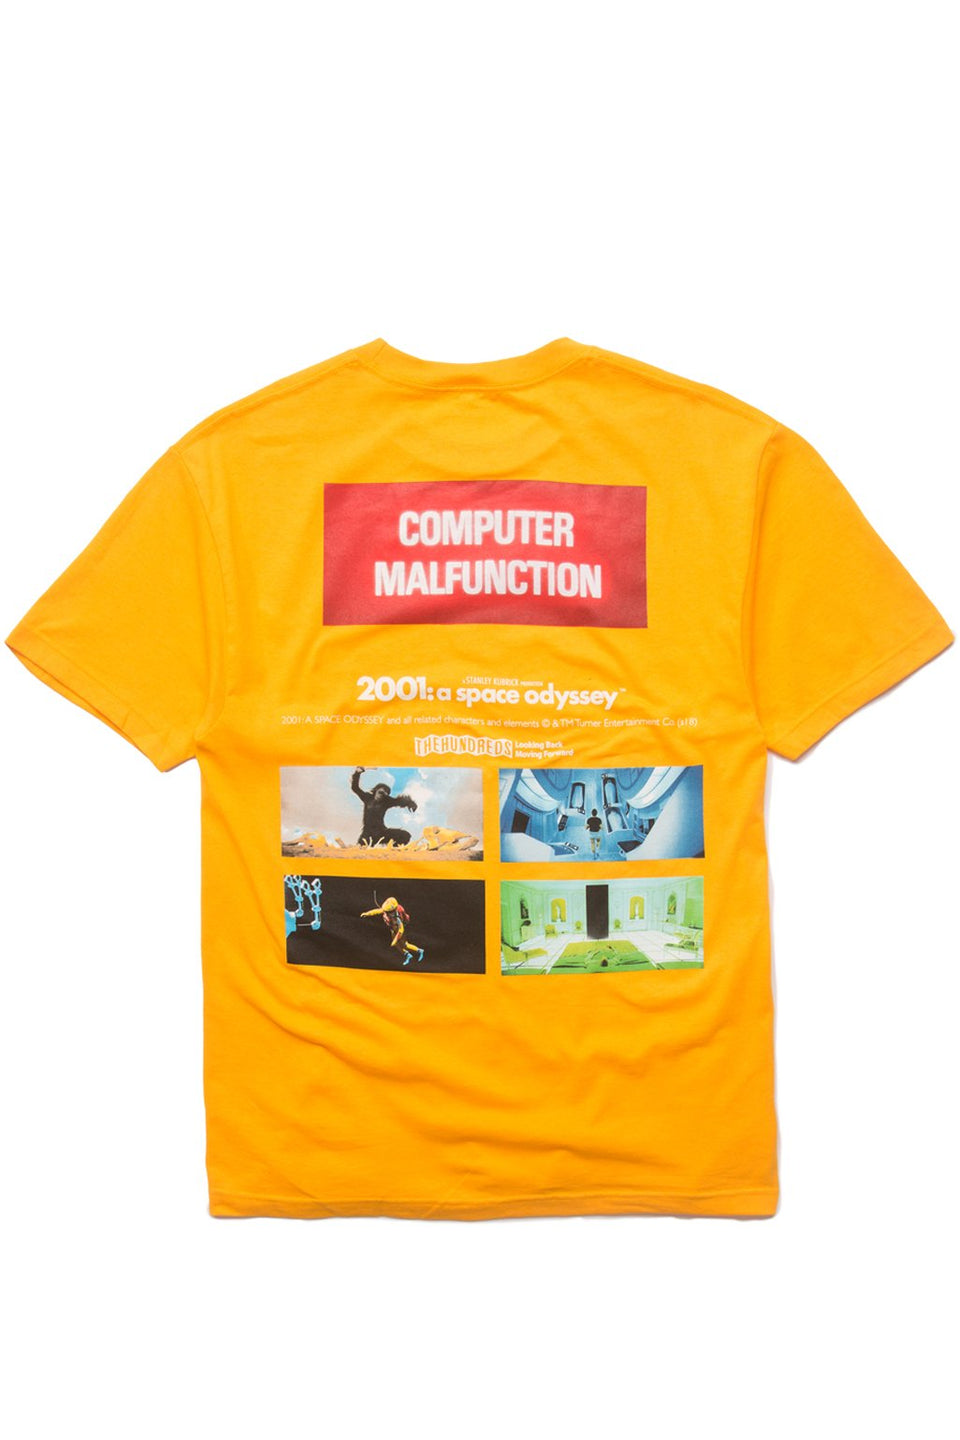 Malfunction T-Shirt